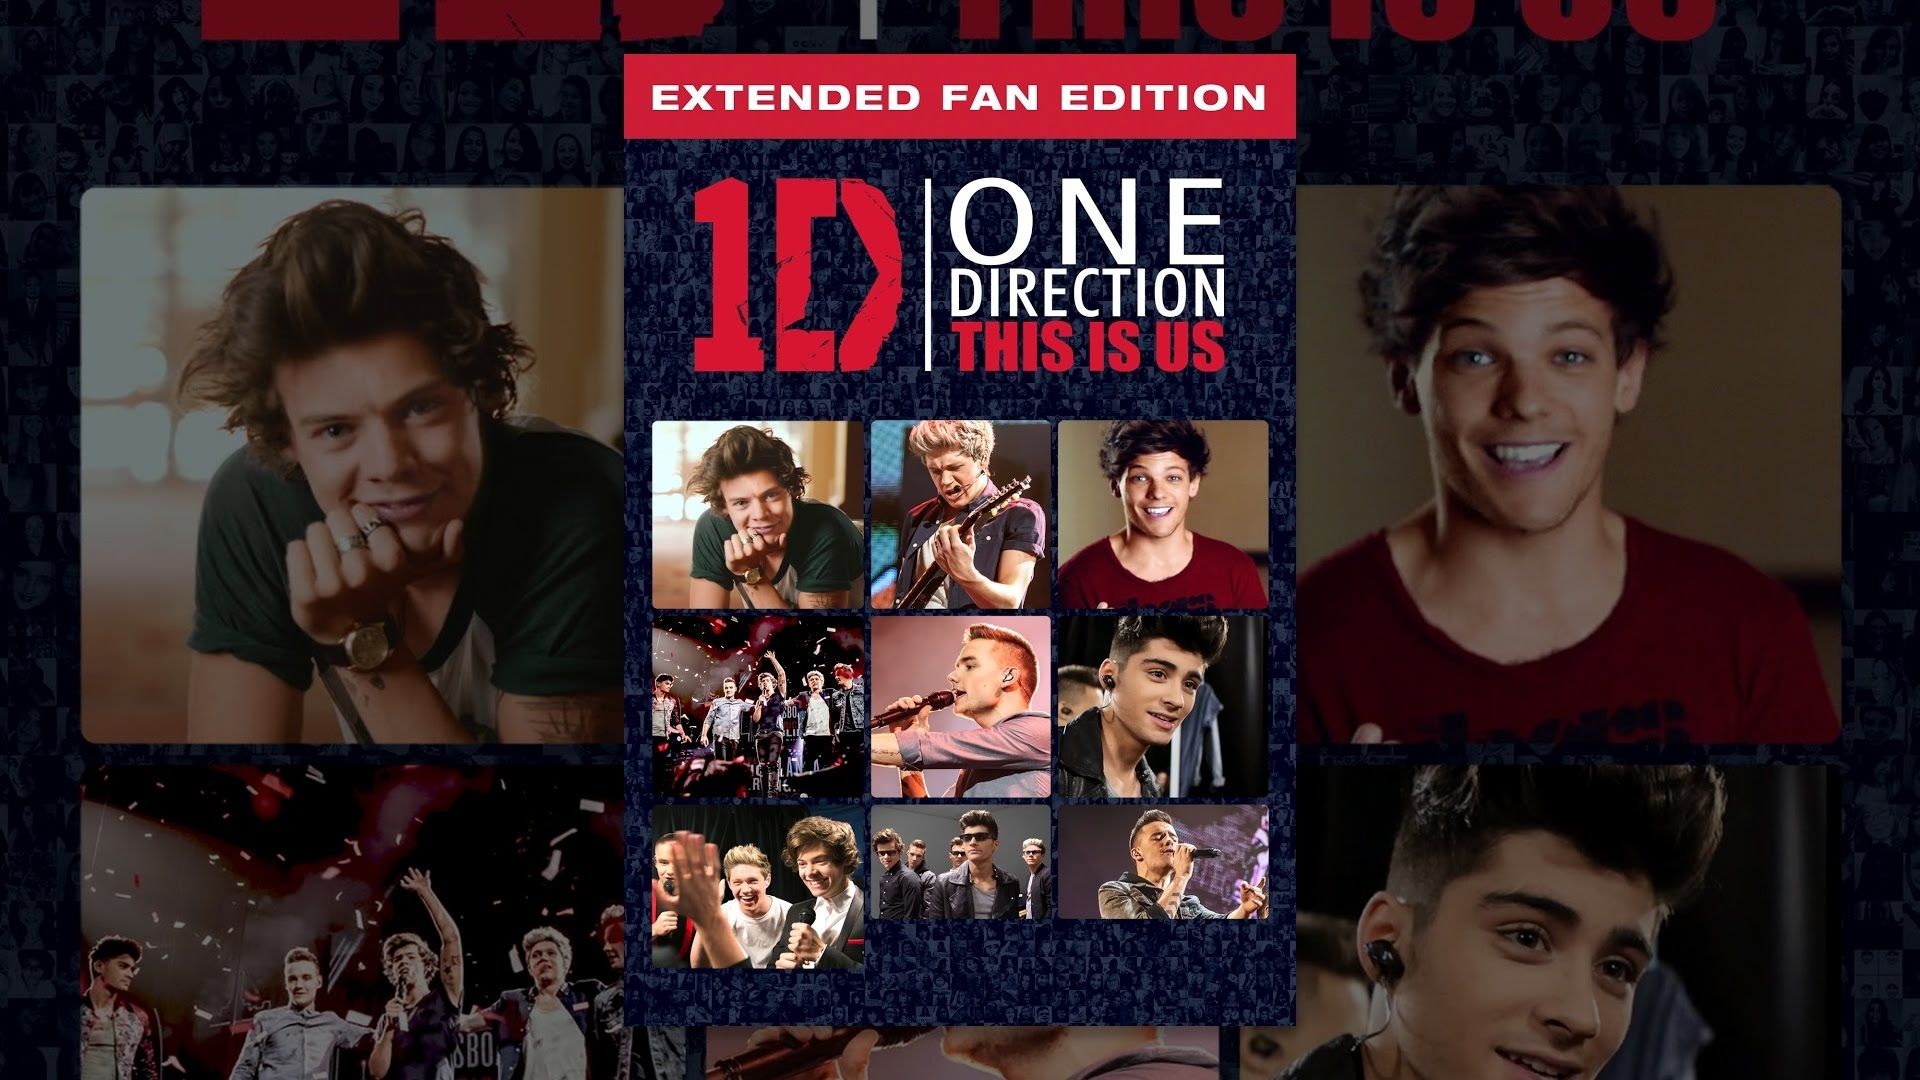 Contact Support One Direction This Is Us Edition